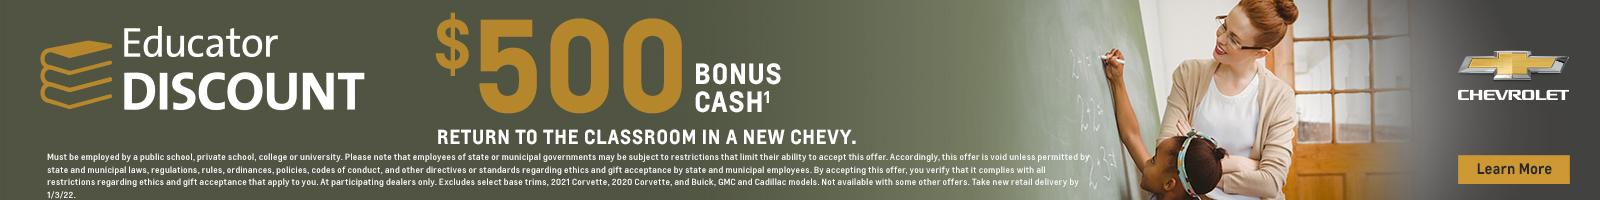 Return to the classroom in a new Chevy.